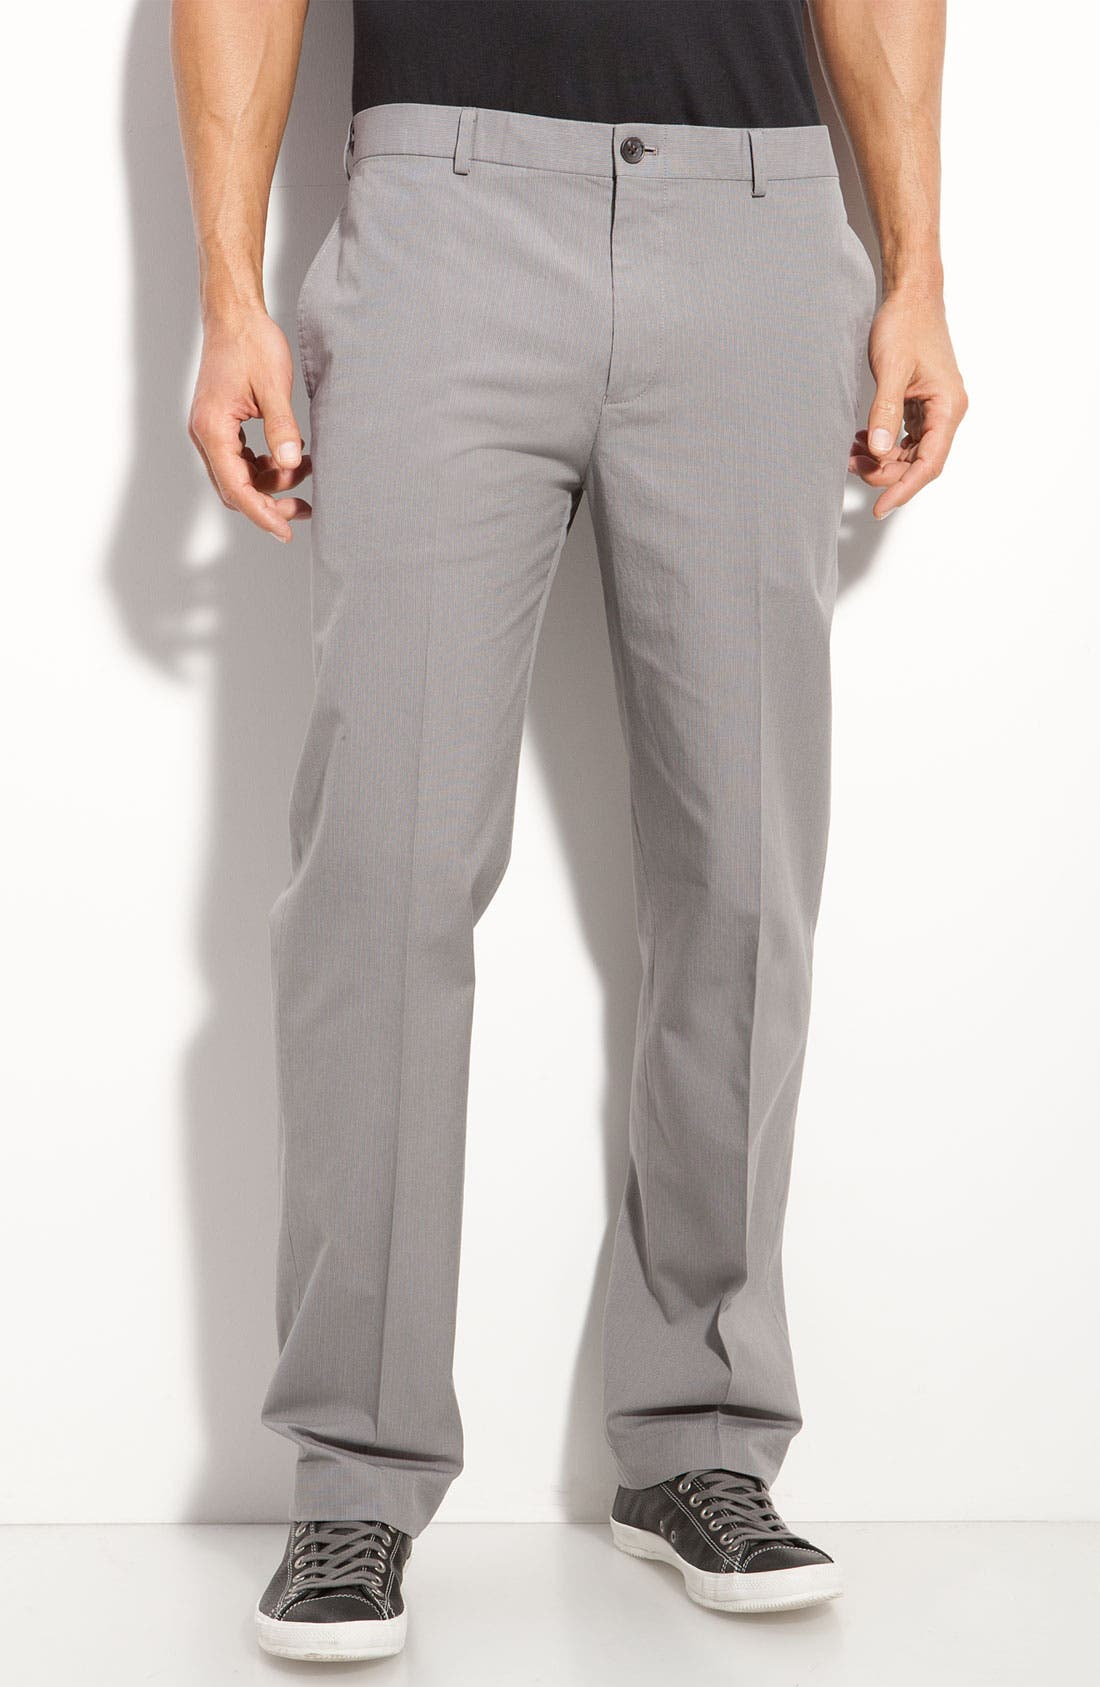 WALLIN & BROS.,                             Flat Front Stripe Pants,                             Main thumbnail 1, color,                             020